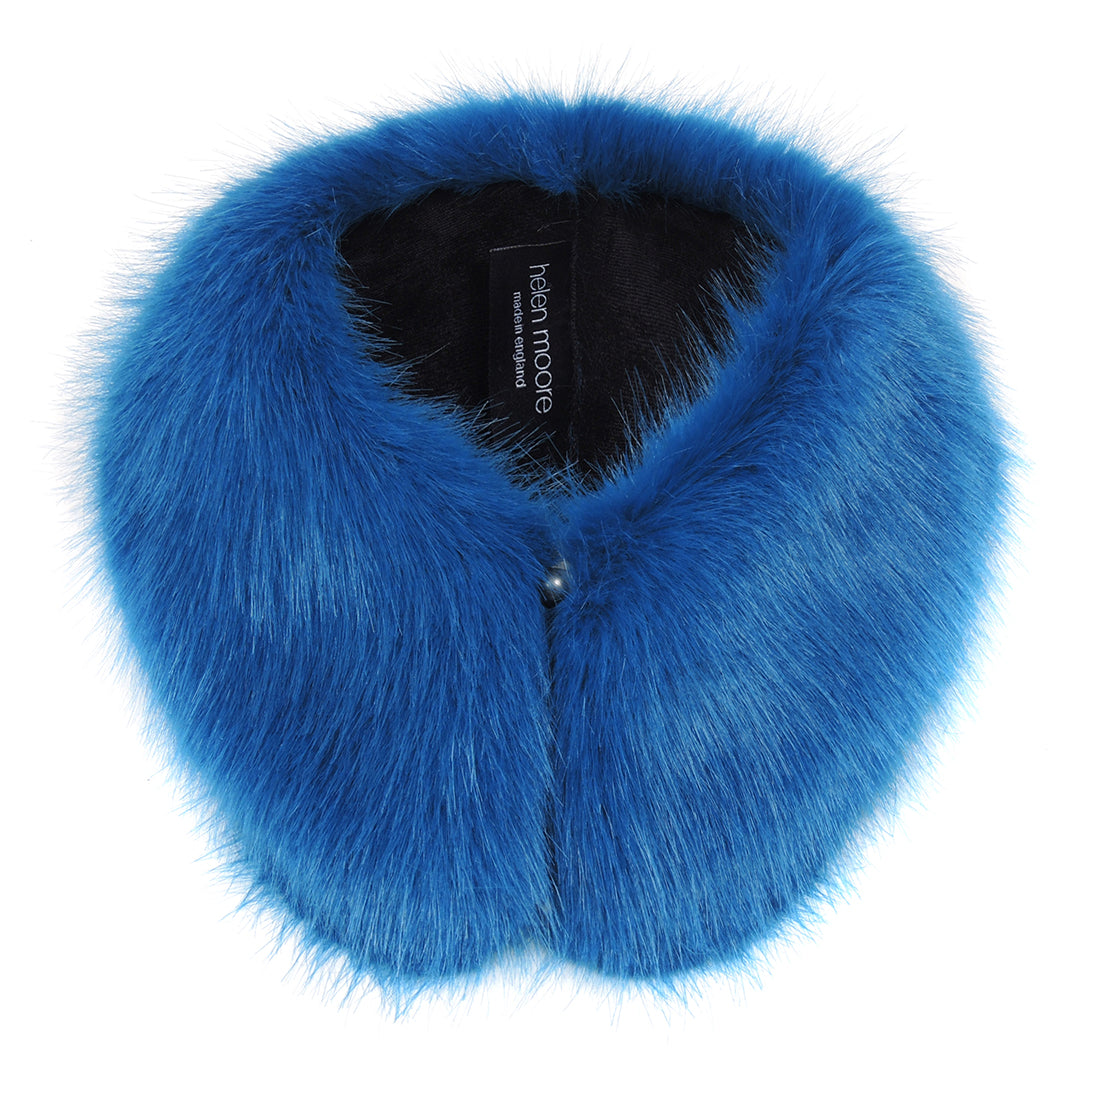 Ocean blue faux fur shirt collar by helen moore